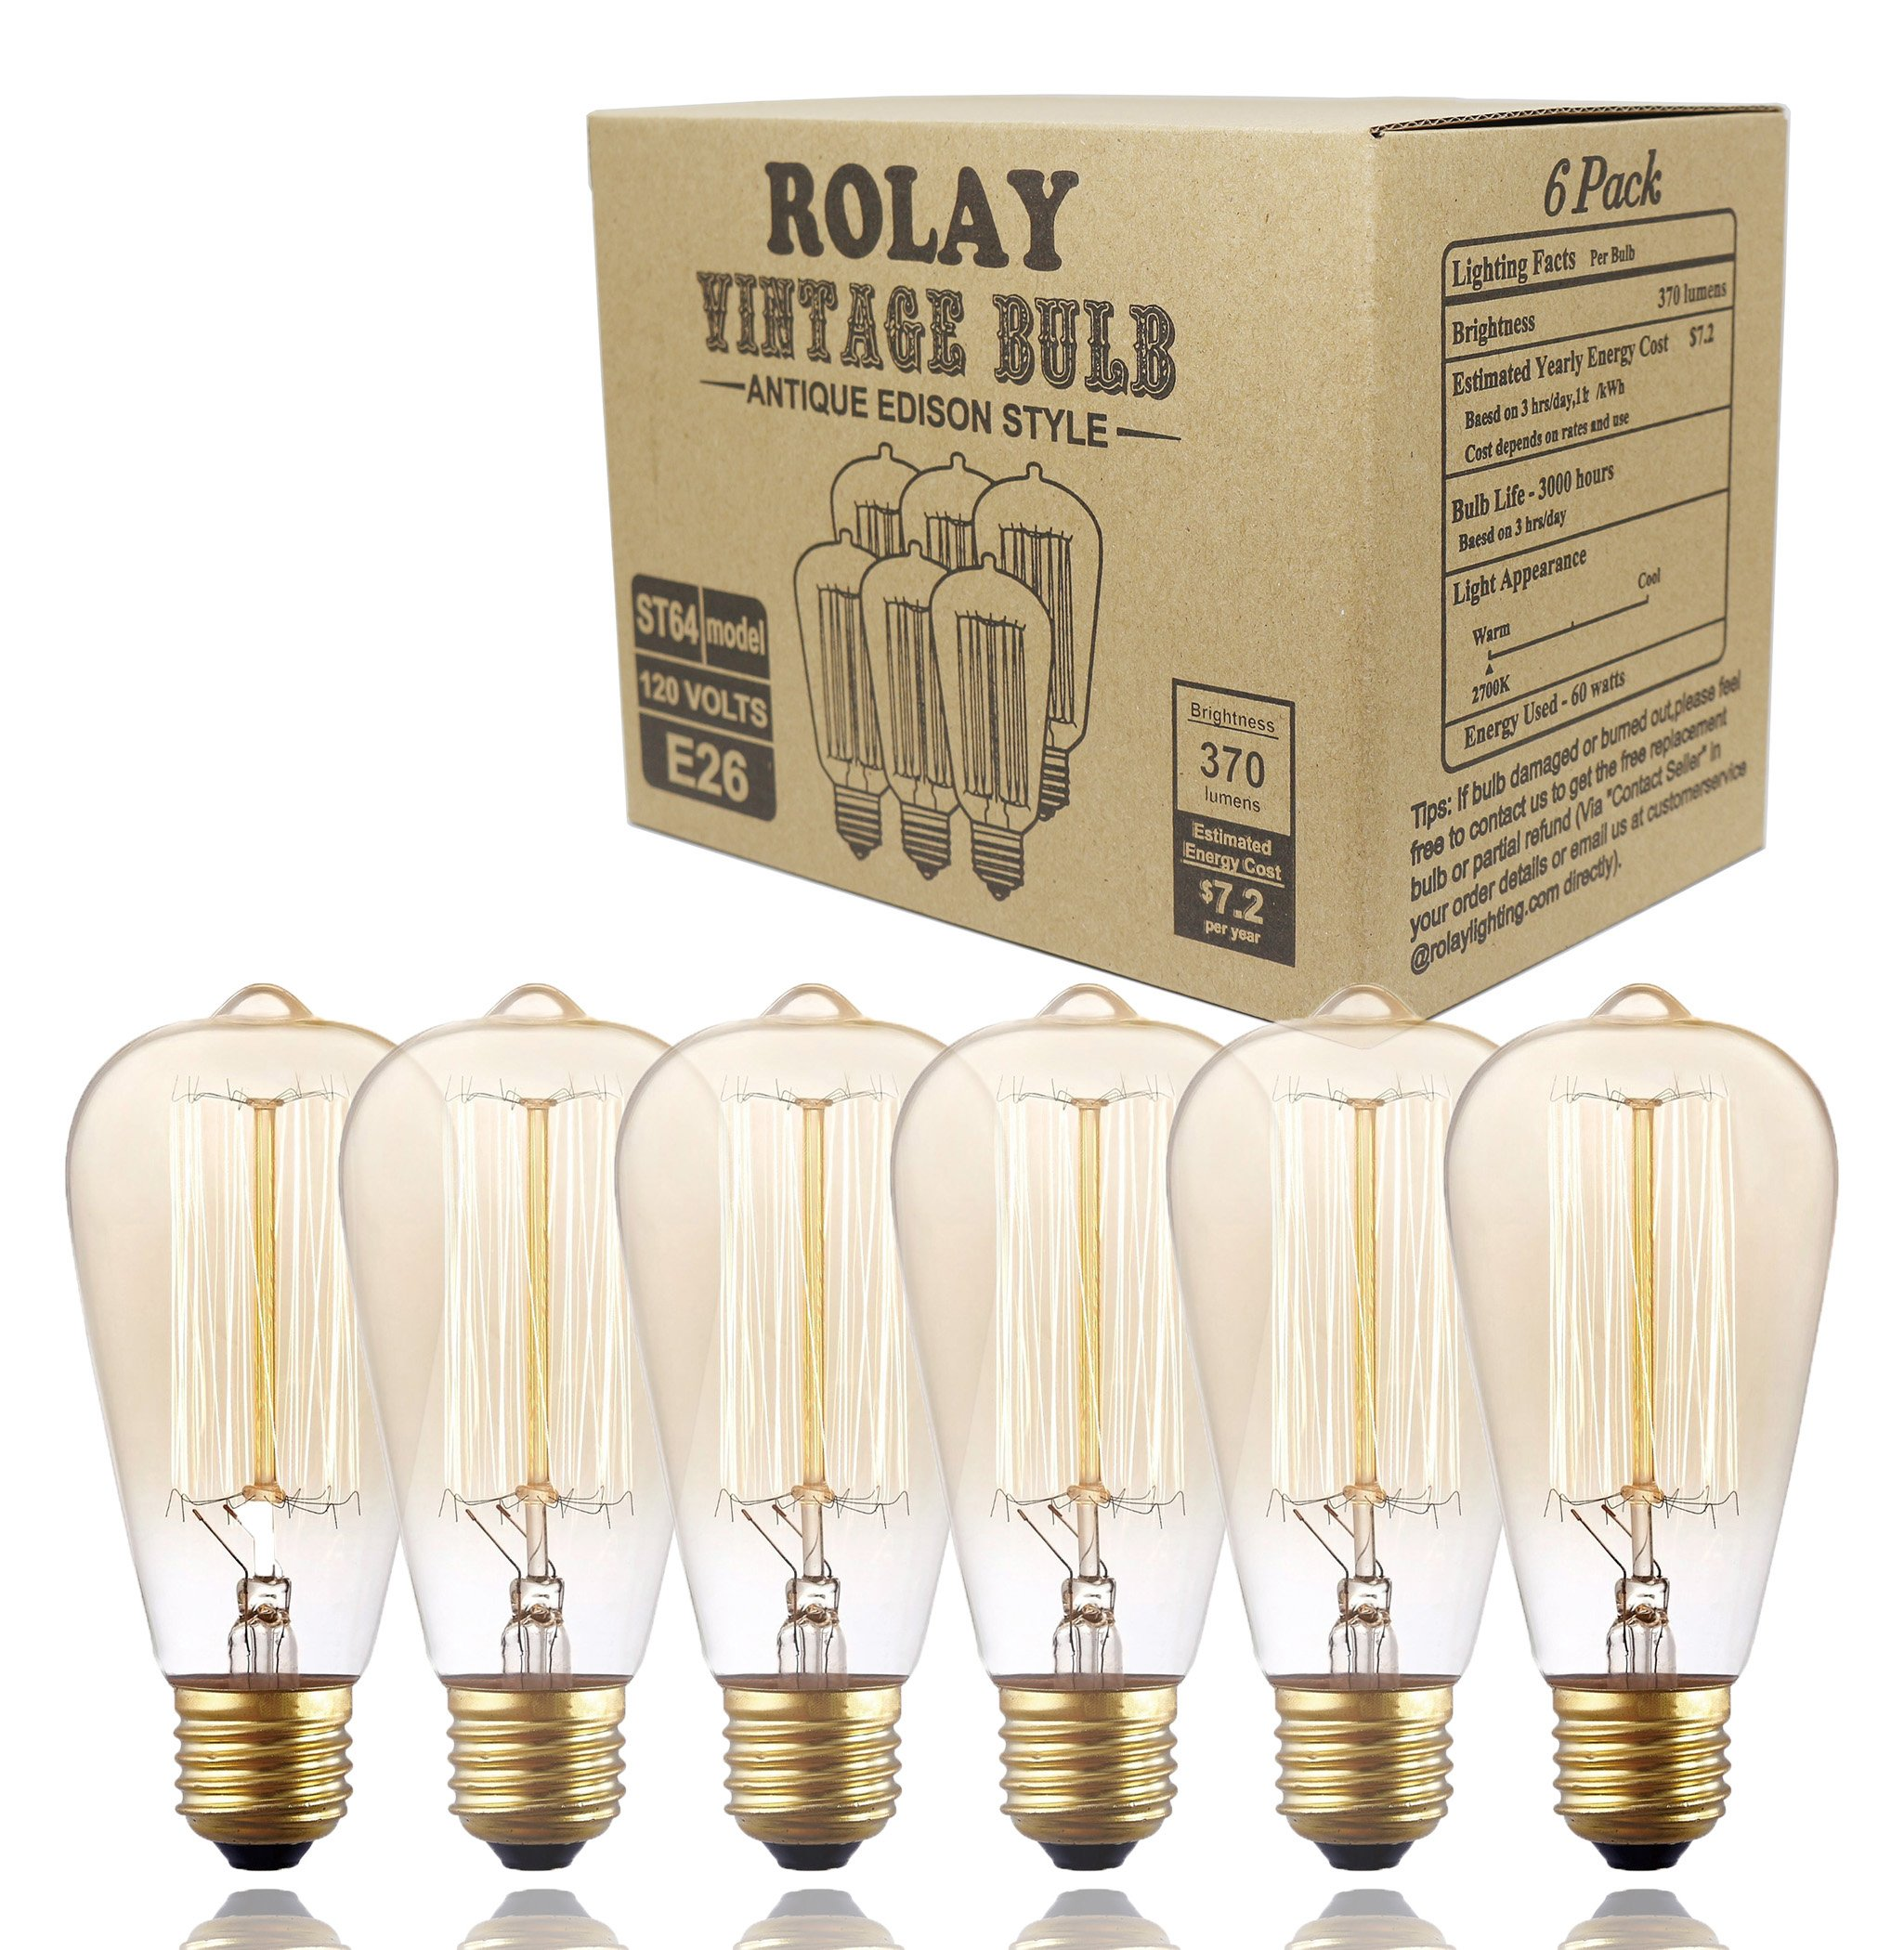 Vintage Edison Bulbs, Rolay 60w Dimmable Vintage Edison Light Bulbs for Pendant Lighting, Wall Sconces, Ceiling Fan and Chandeliers, 6 Pack